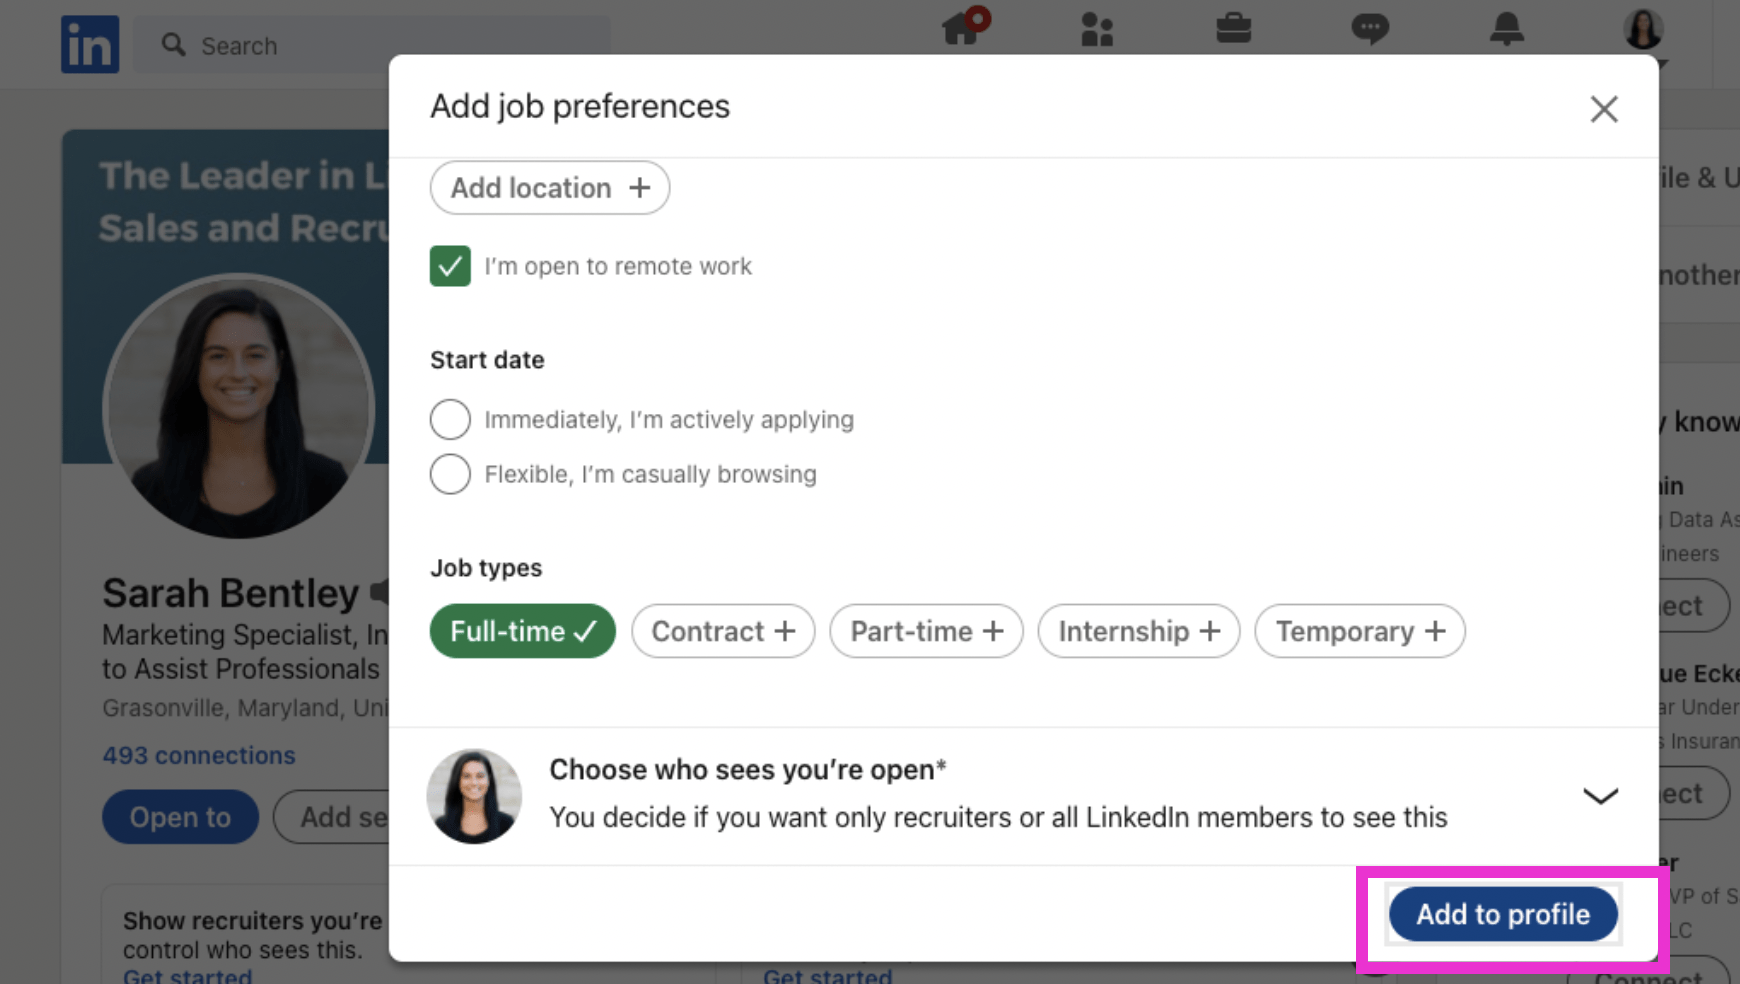 How to Add Job Preferences to Your LinkedIn Profile